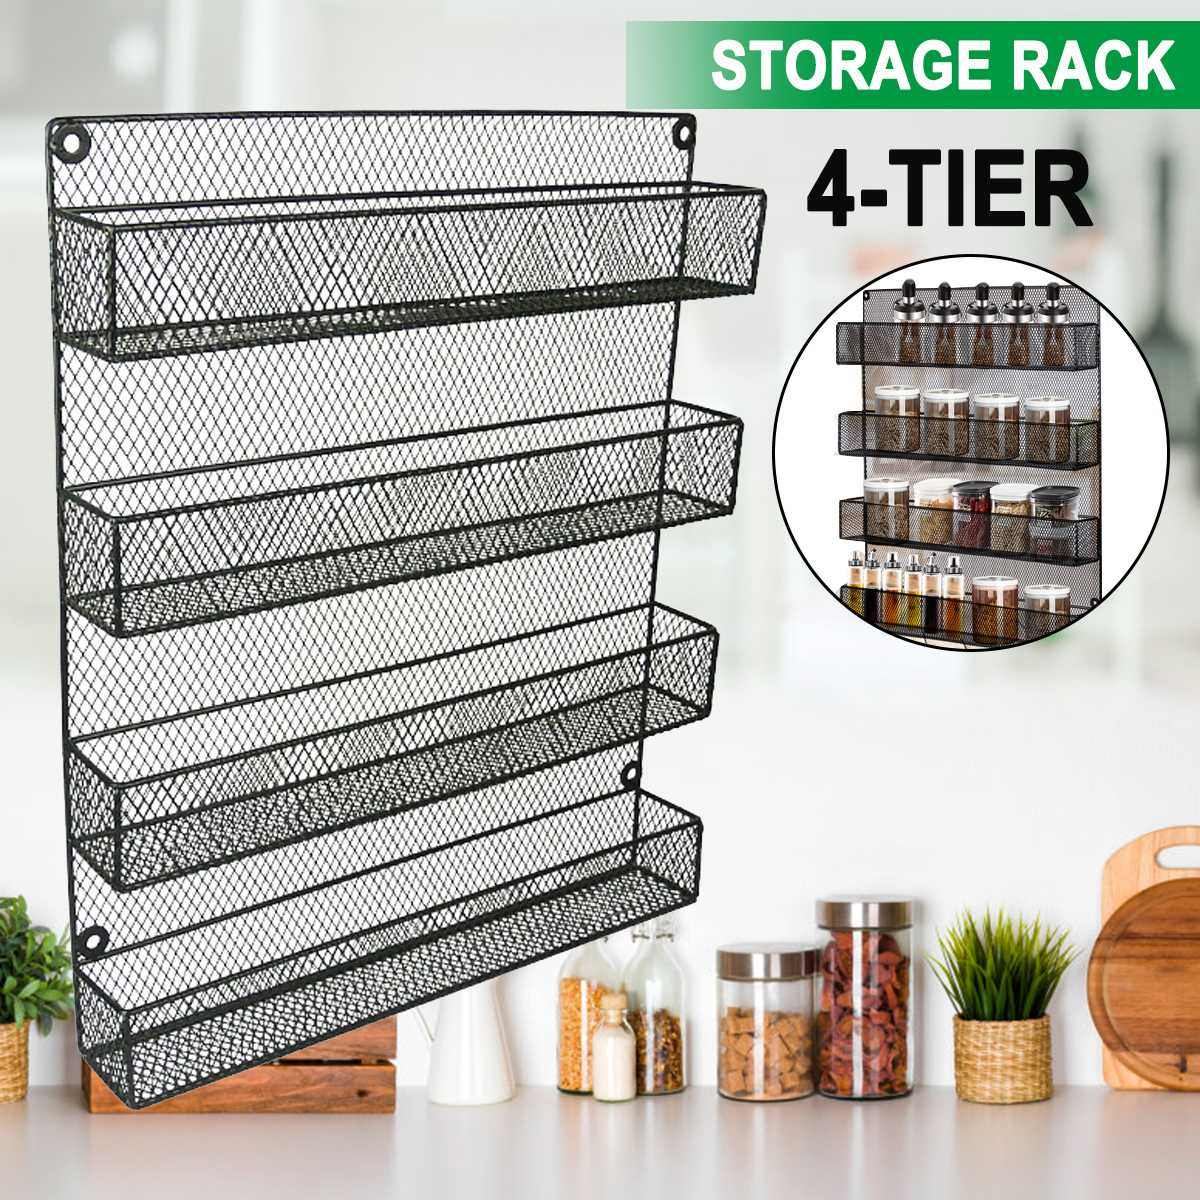 Wall Mount Spice Rack Organizer For Cabinet Spice Shelf Seasoning Organizer Pantry Door Organizer Spice Storage Storage Holders Racks Aliexpress